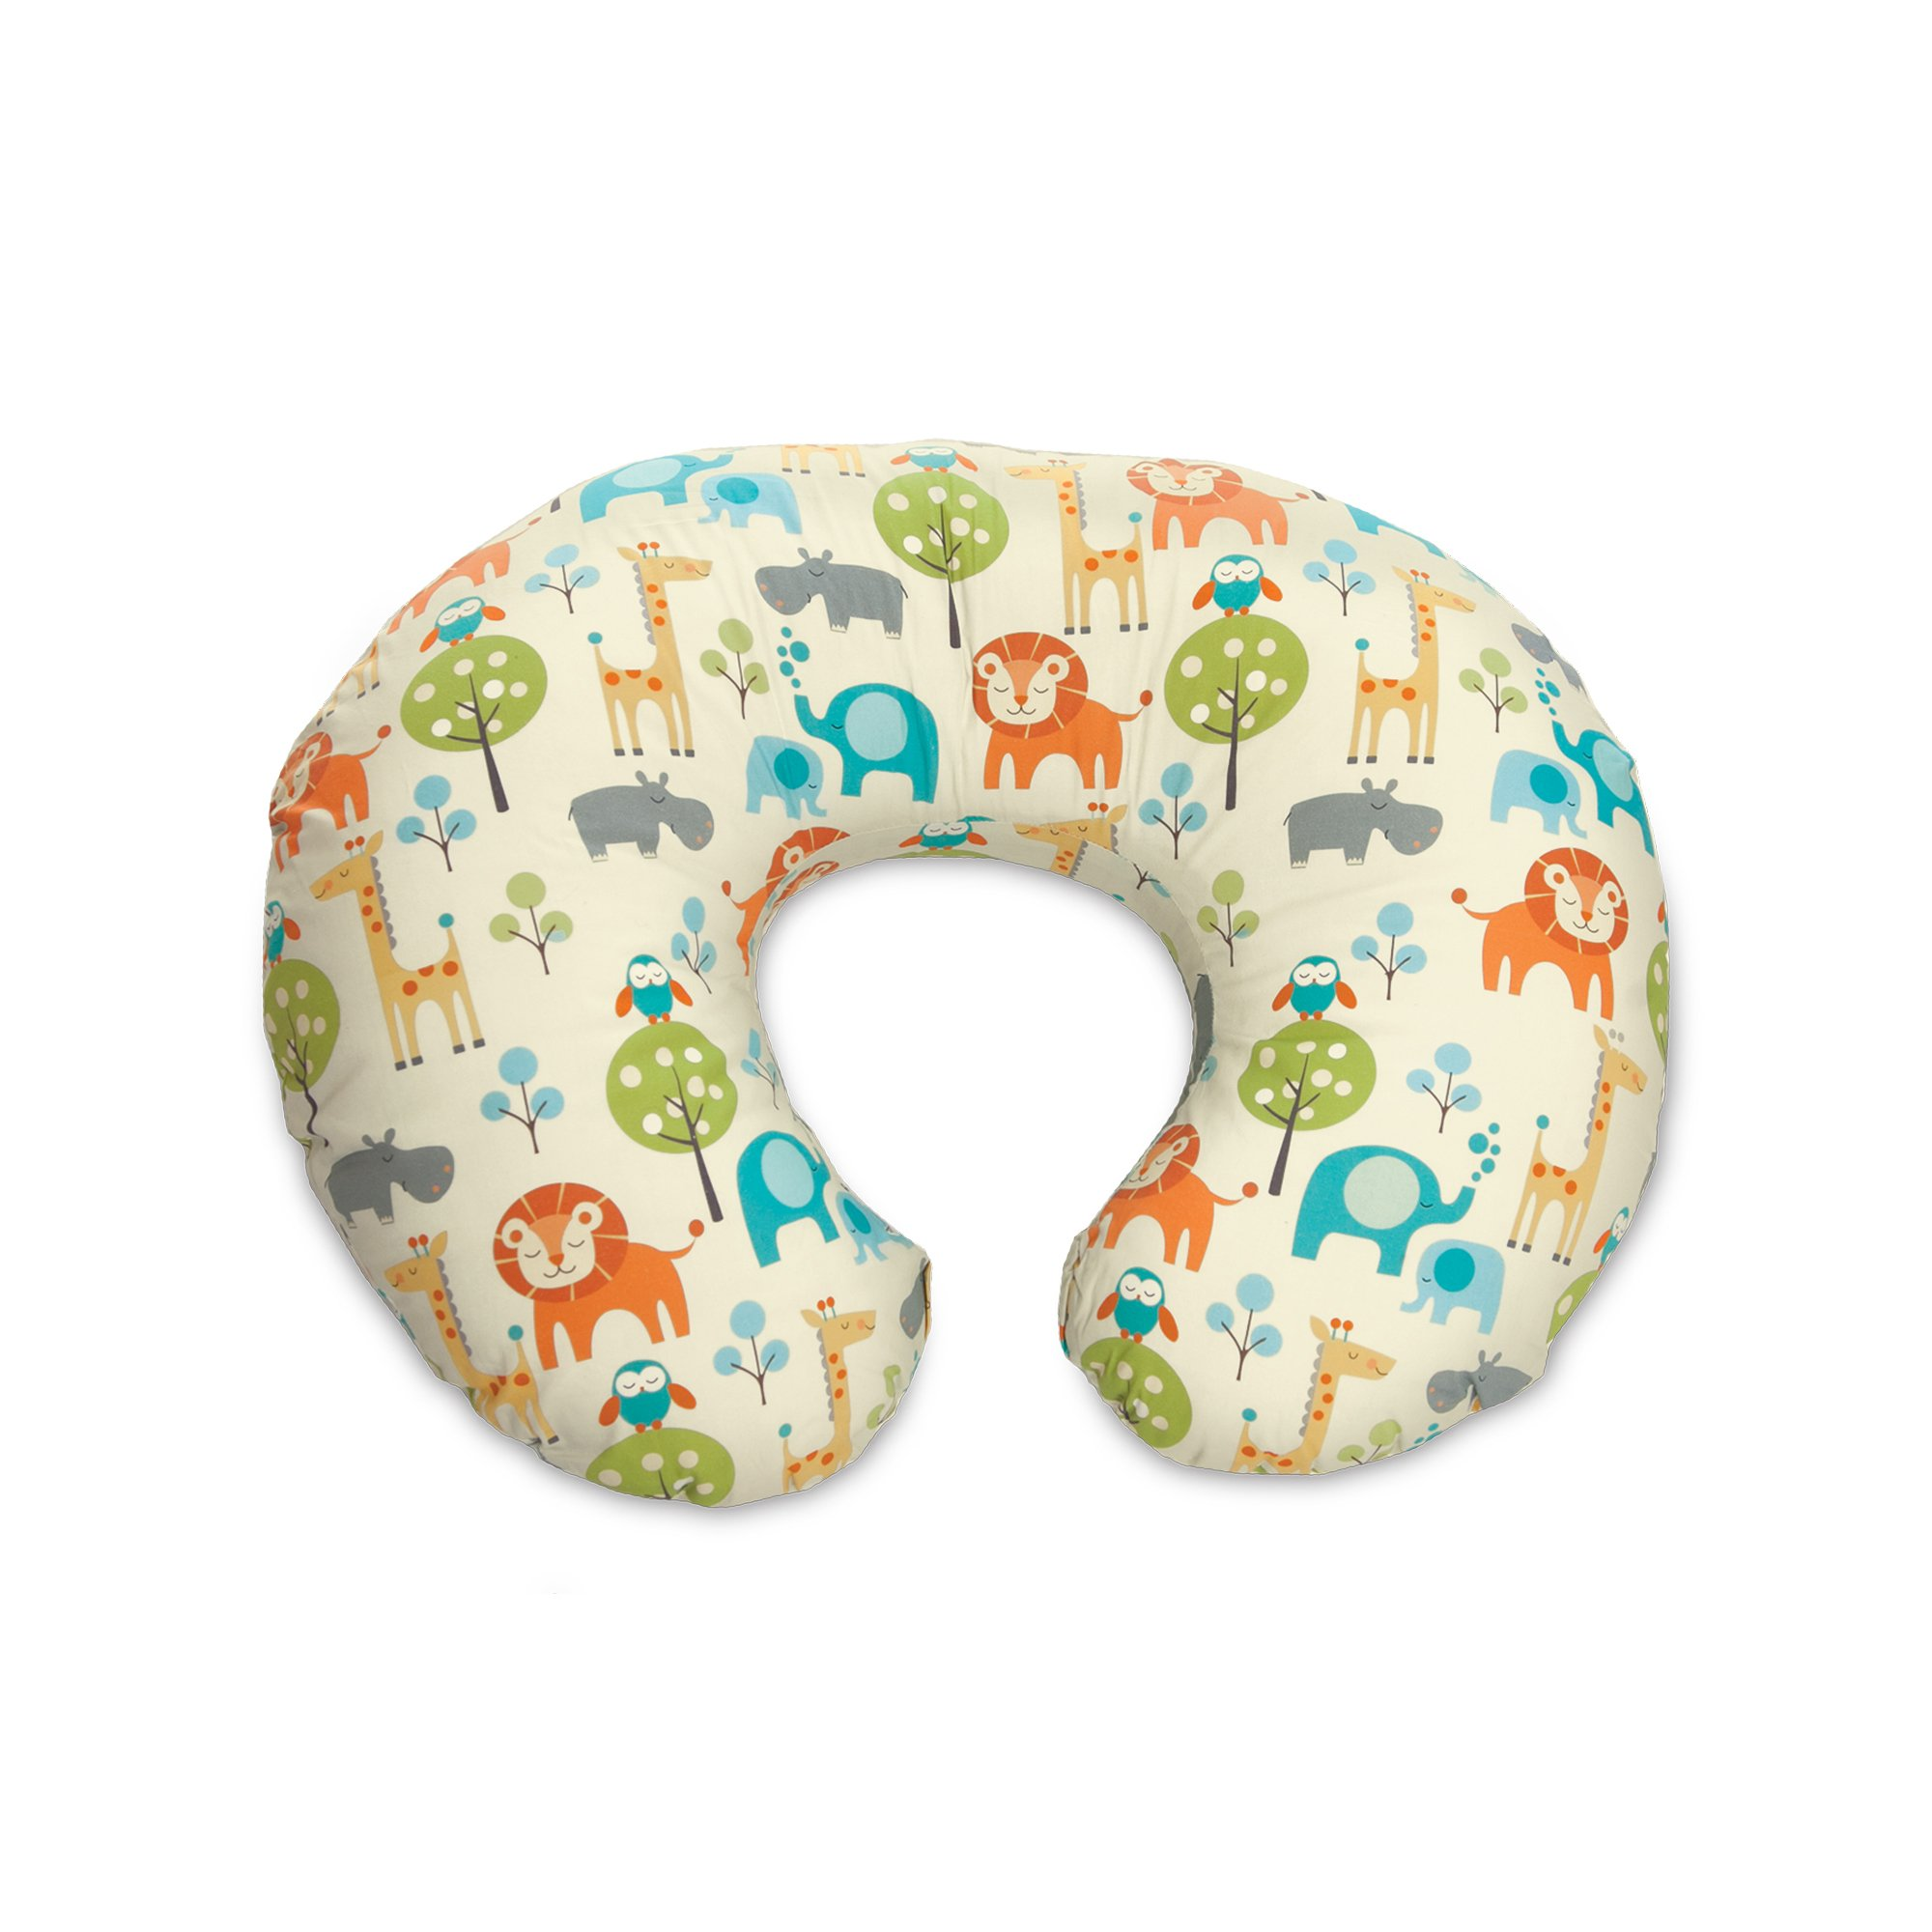 Boppy Original Nursing Pillow and Positioner, Peaceful Jungle, Cotton Blend Fabric with allover fashion by Boppy